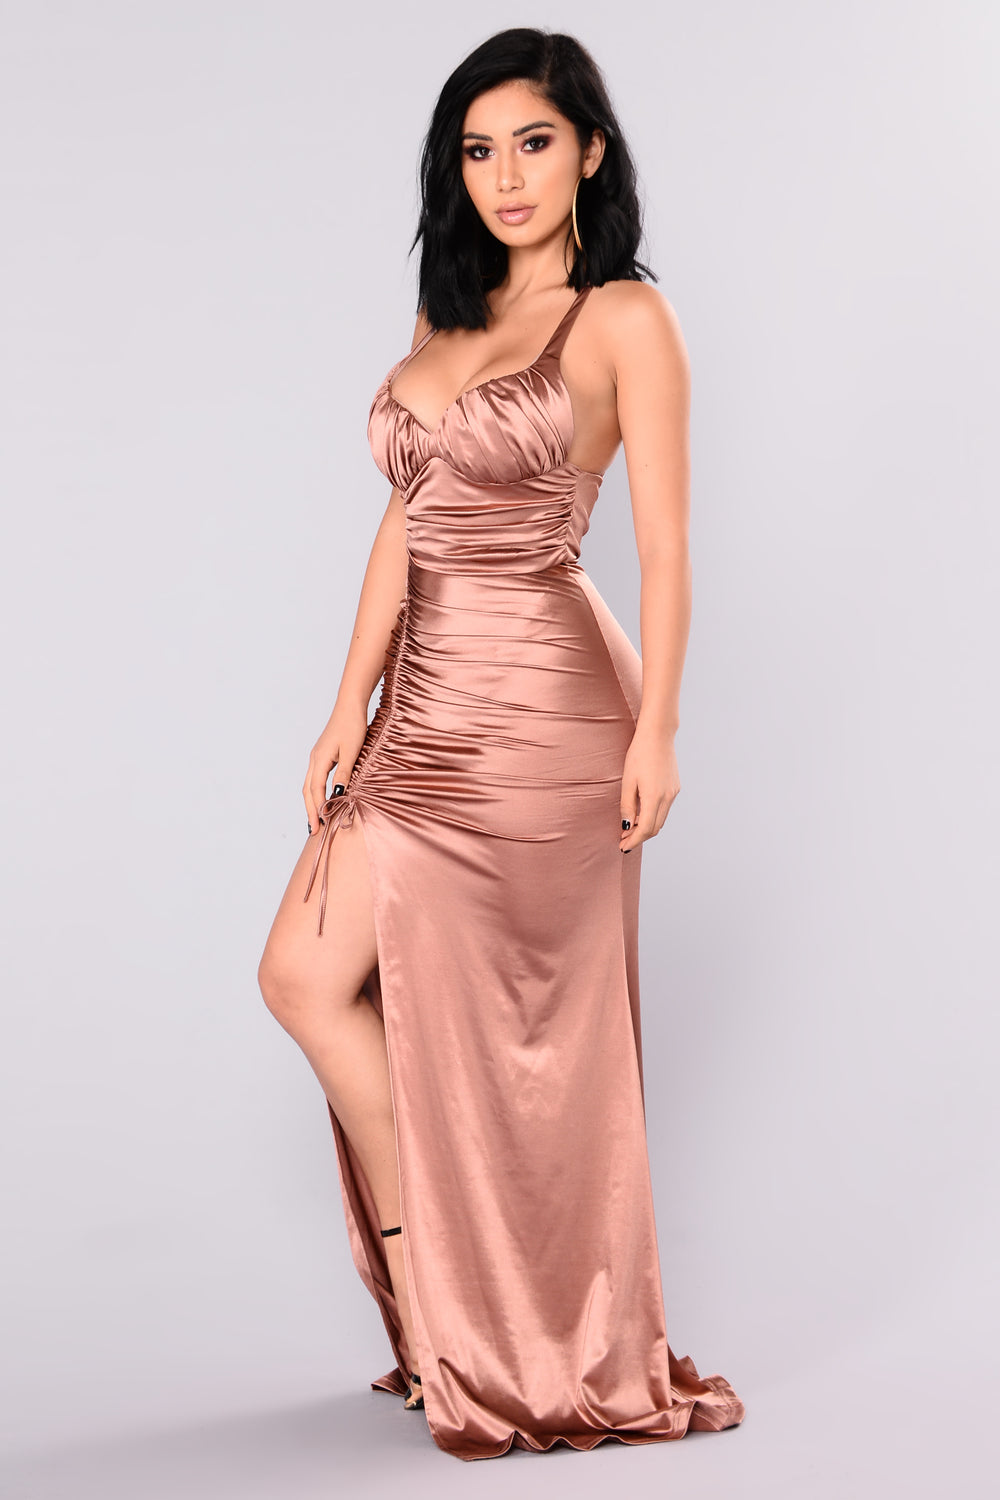 Roxanna Mermaid Satin Dress Fashion Nova